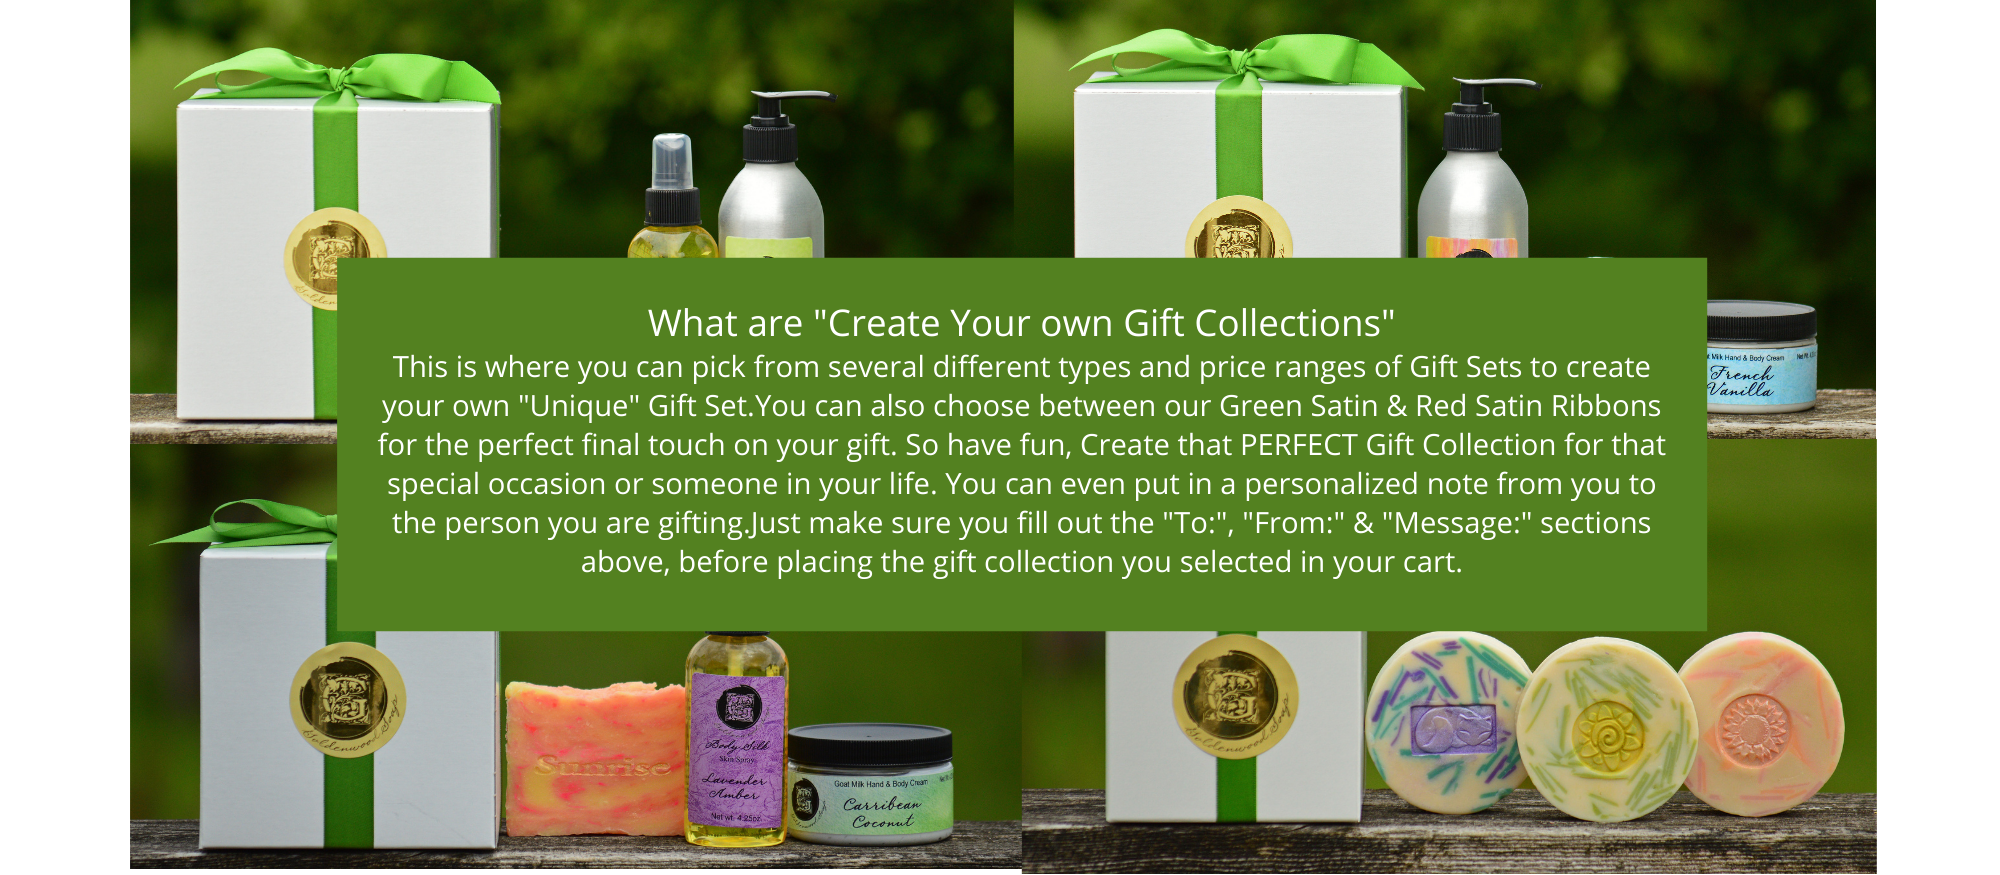 gift-set-category-page-photo-w-text3.png